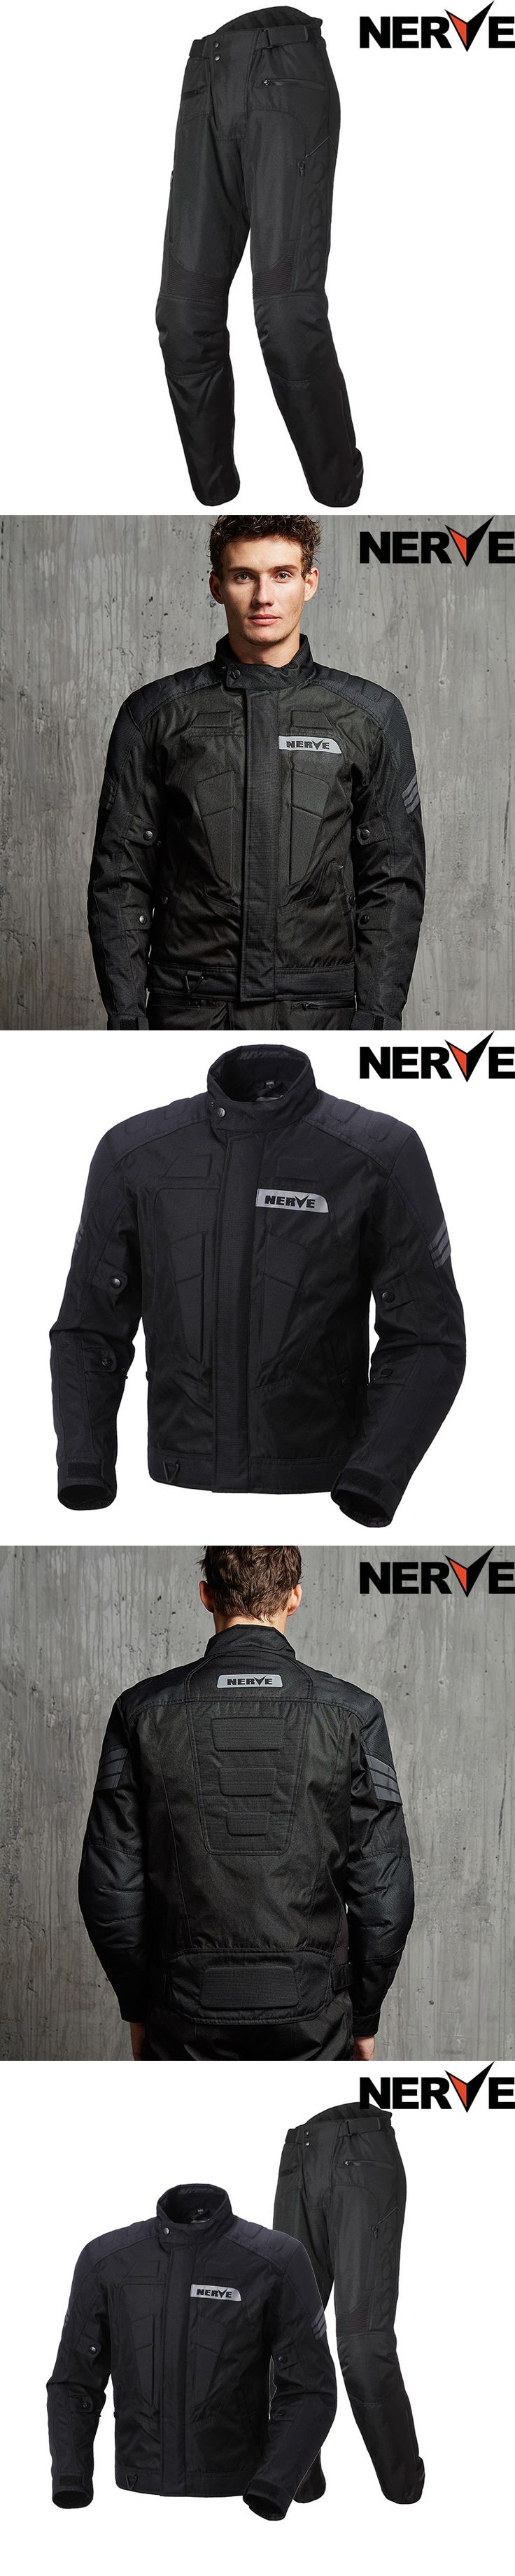 NERVE Motocross Riding Equipment Gear  Moto Jacket Summer mesh Men's Oxford Cloth Street Bike Racing Motorcycle Jacket, protect